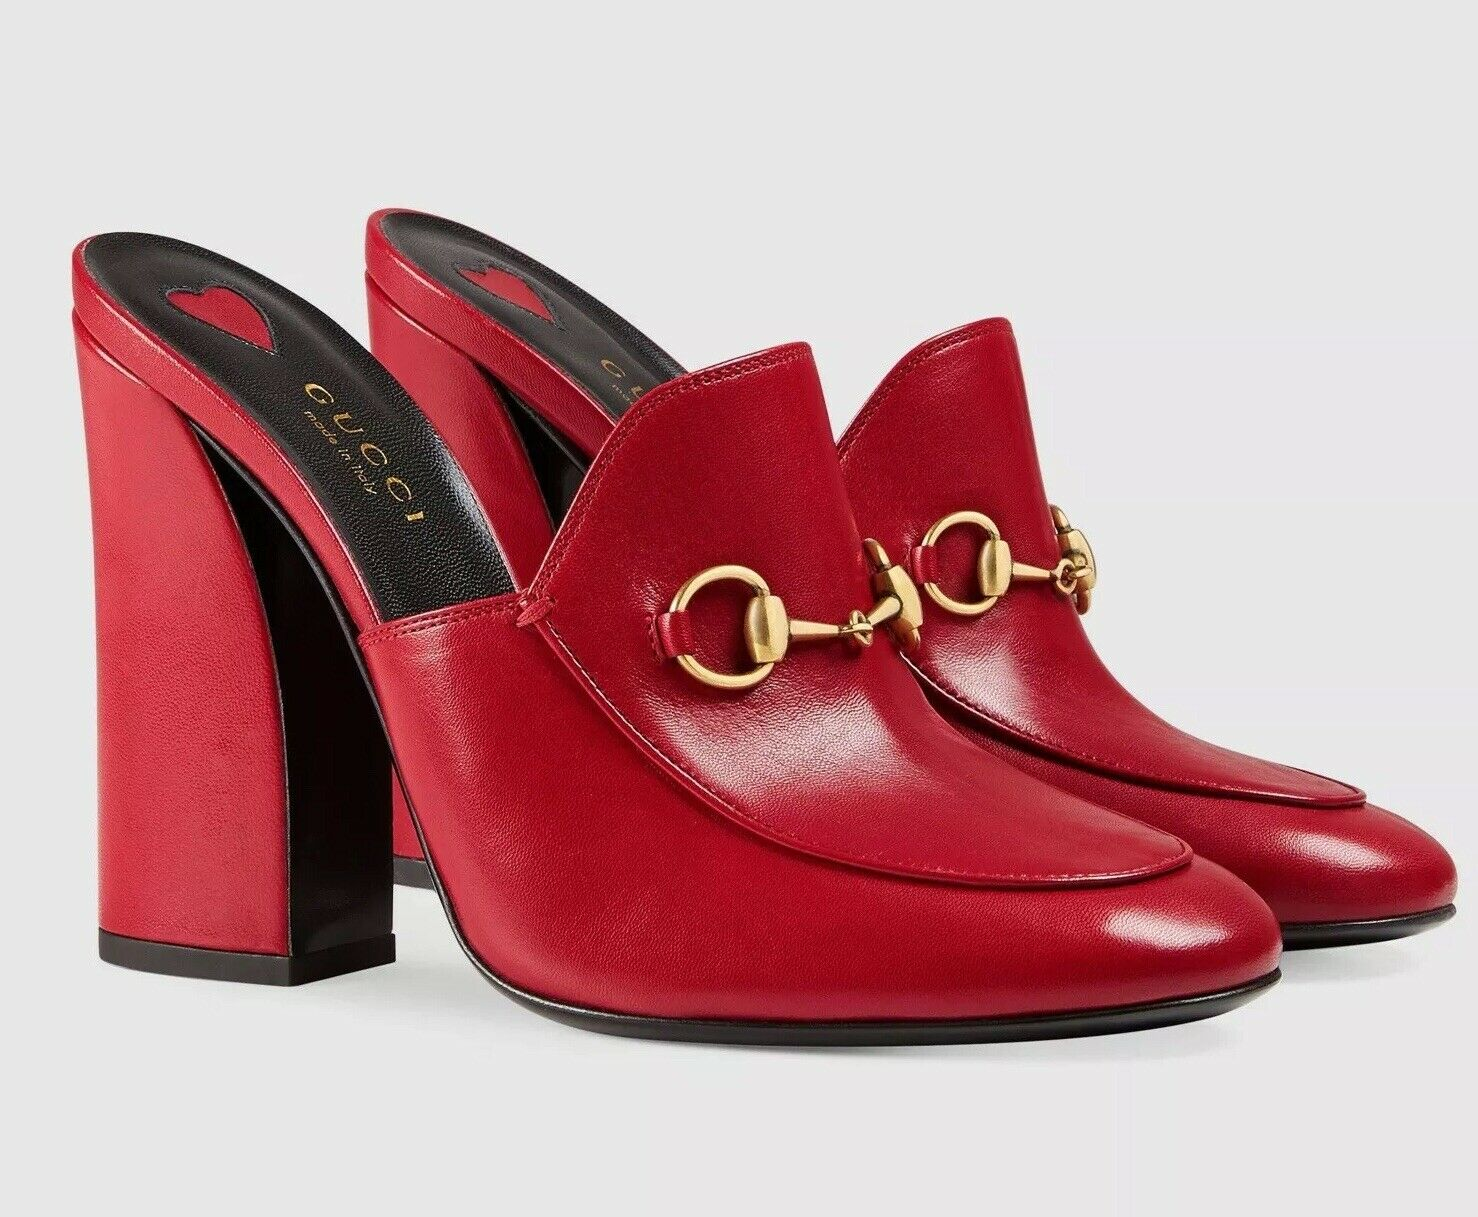 GUCCI Princetown 'Julie' Red Horsebit Heels Leather Mule #431947 Sz 39.5, US 9.5